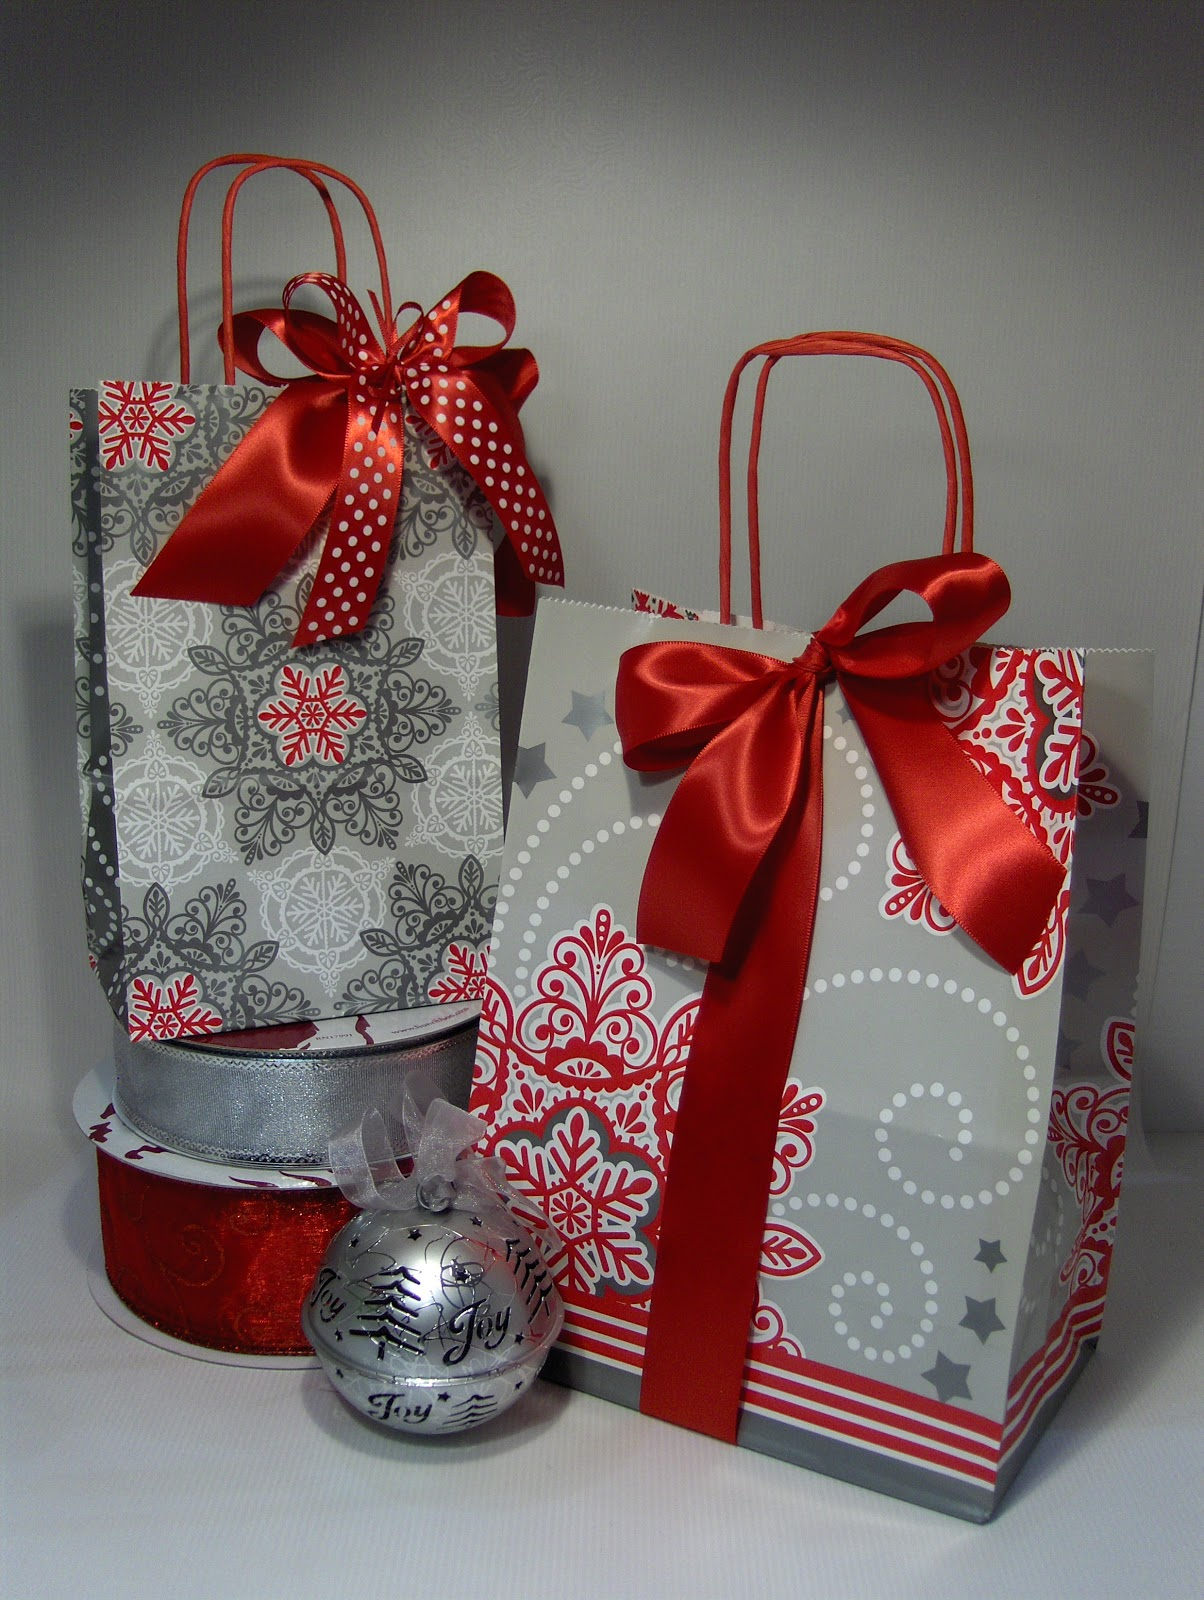 The Essential Packaging Store Blog: Gift Wrapping Ideas!